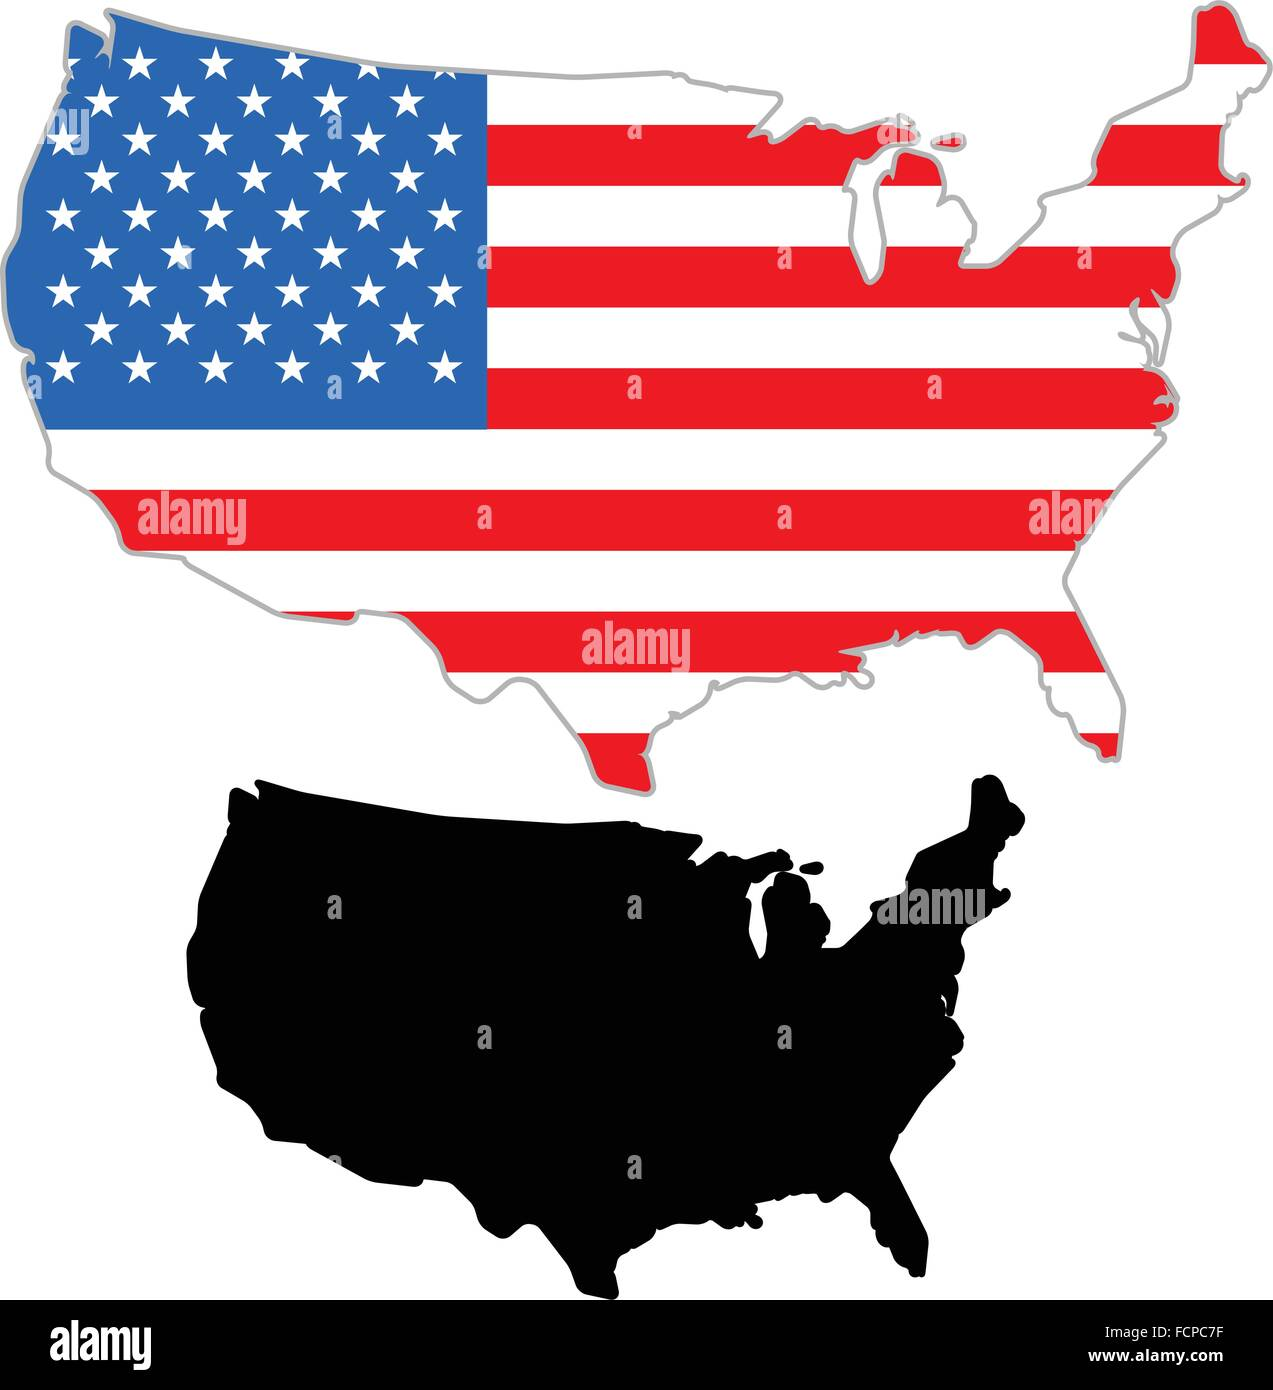 USA map flag on a white background. Vector illustrator Stock ... Illustrator Map Of Usa on microsoft powerpoint map of usa, hand drawn map of usa, continent map of usa, vector map of usa, corel draw map of usa, word map of usa, illustration map of usa, nuke map of usa, county map of usa, excel map of usa,